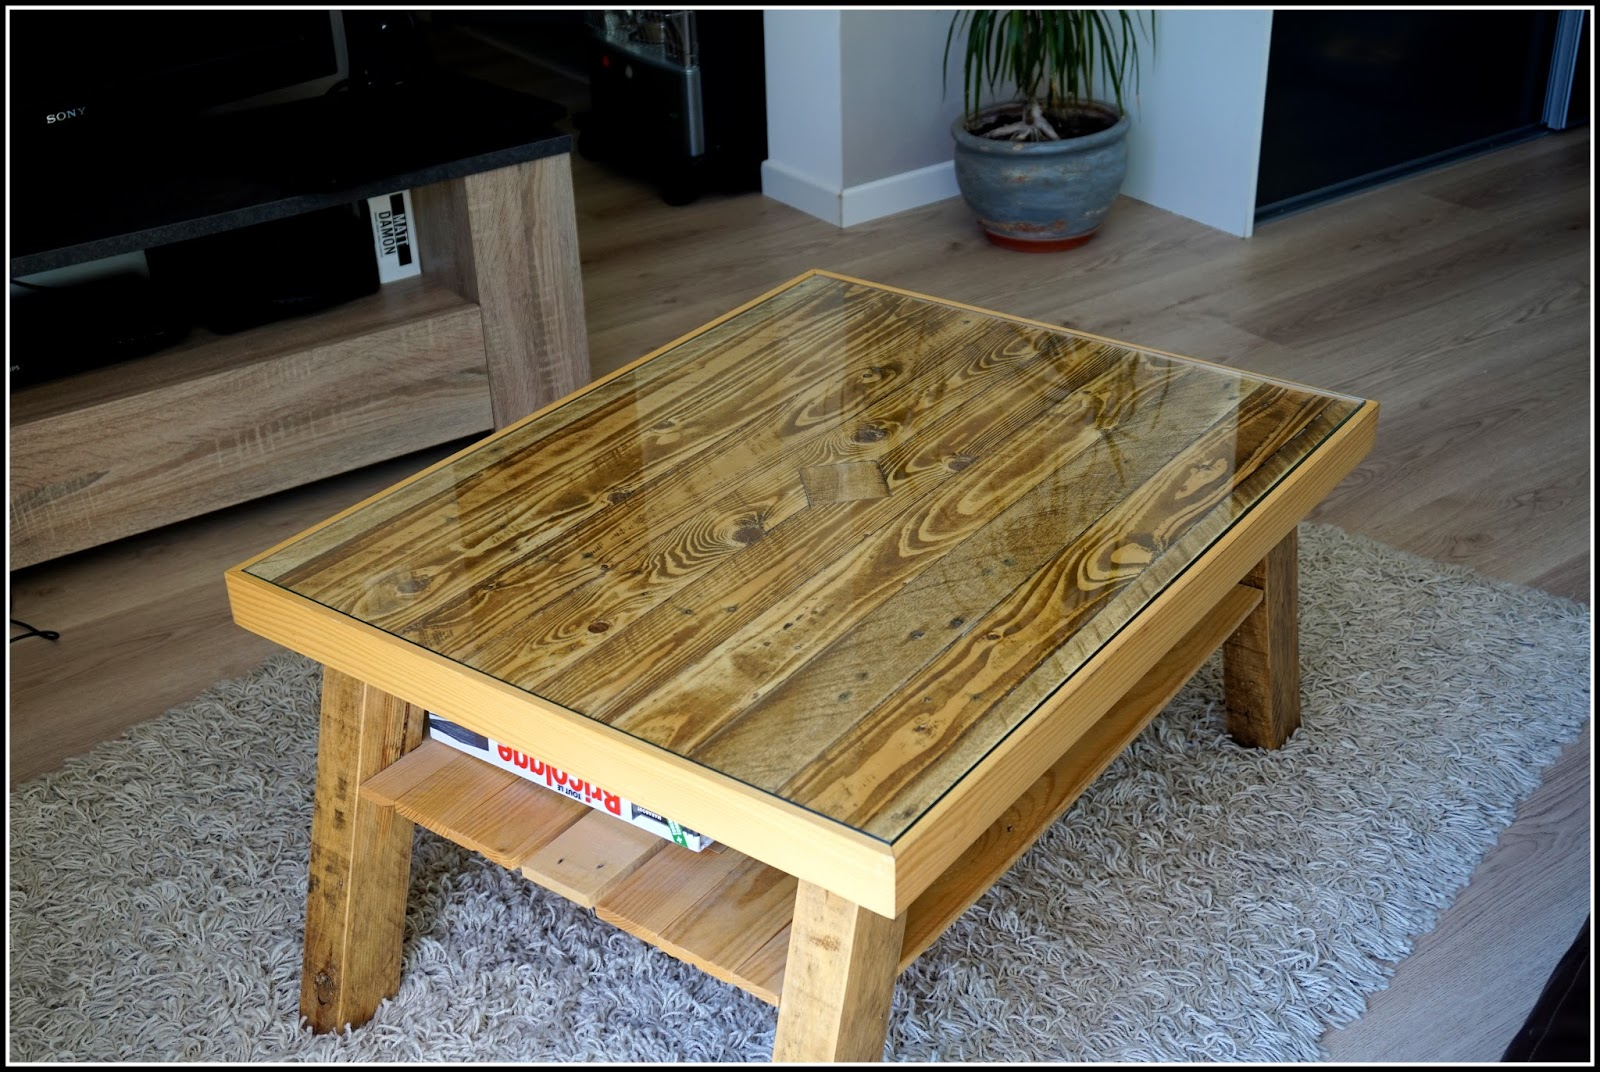 Comment faire une table basse en palette - Comment faire une table basse ...